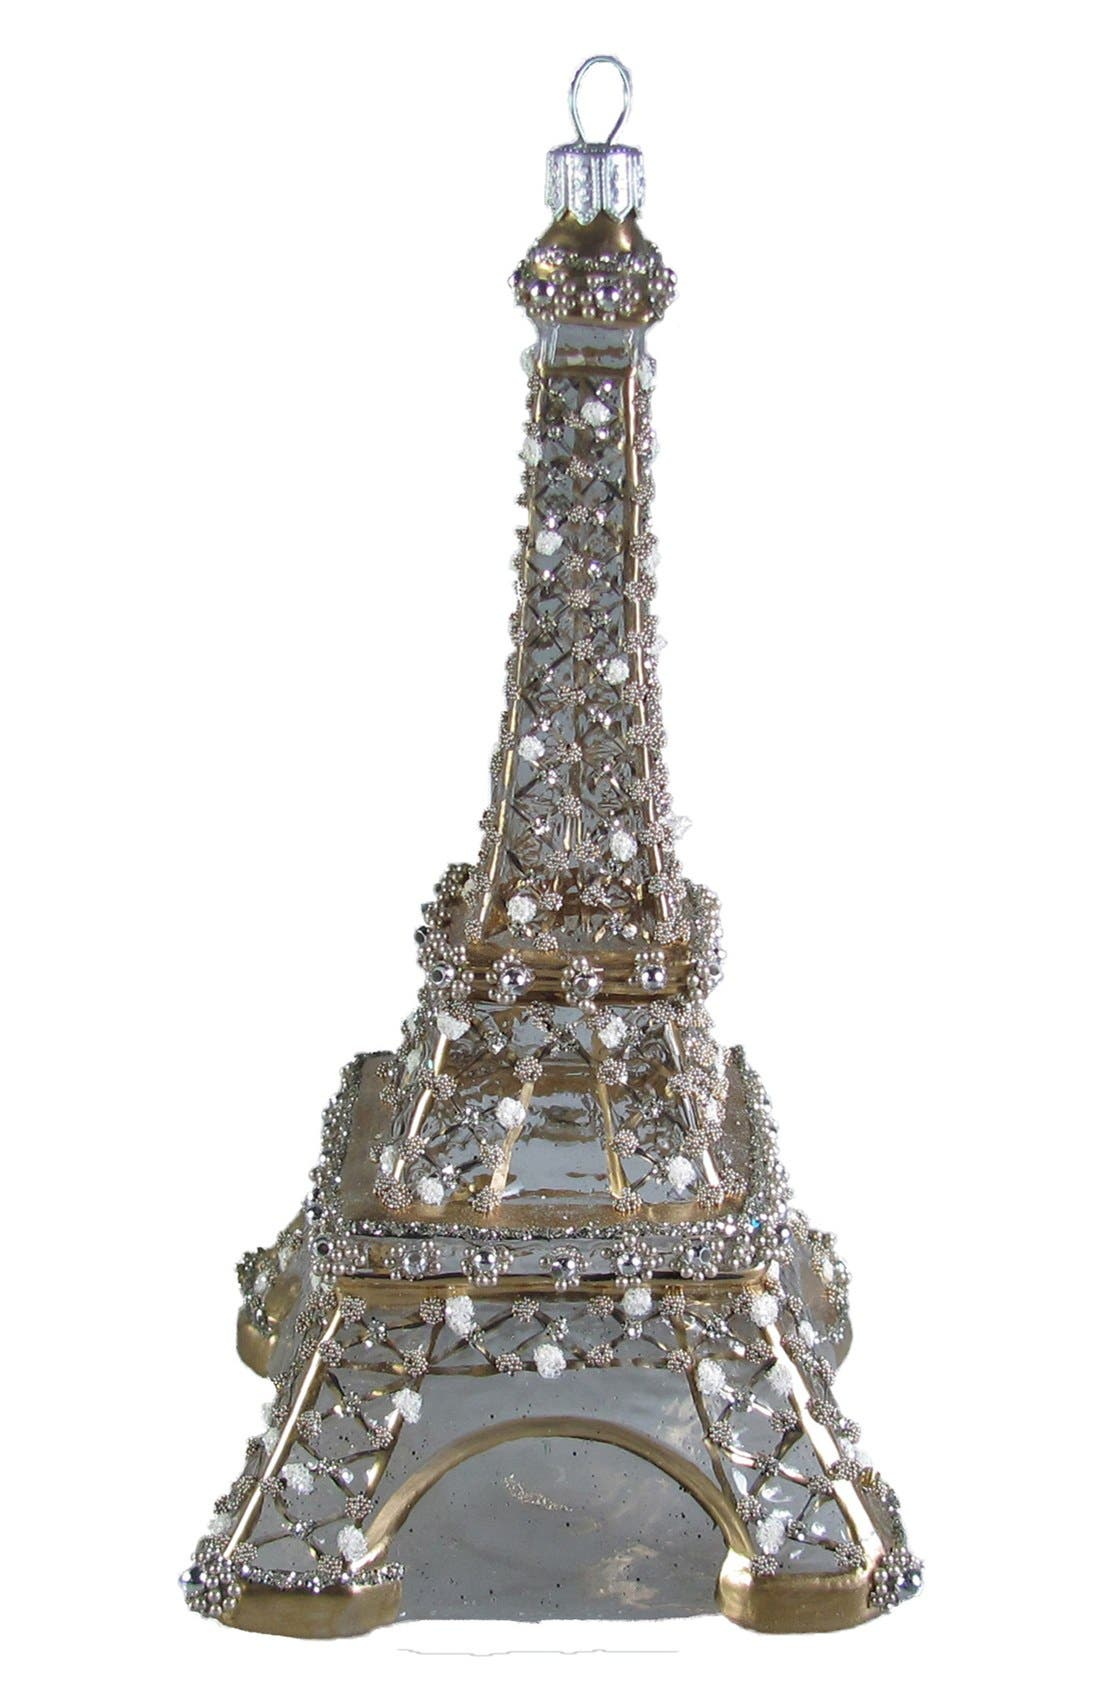 NORDSTROM AT HOME, Crystal Embellished Eiffel Tower Ornament, Main thumbnail 1, color, 710